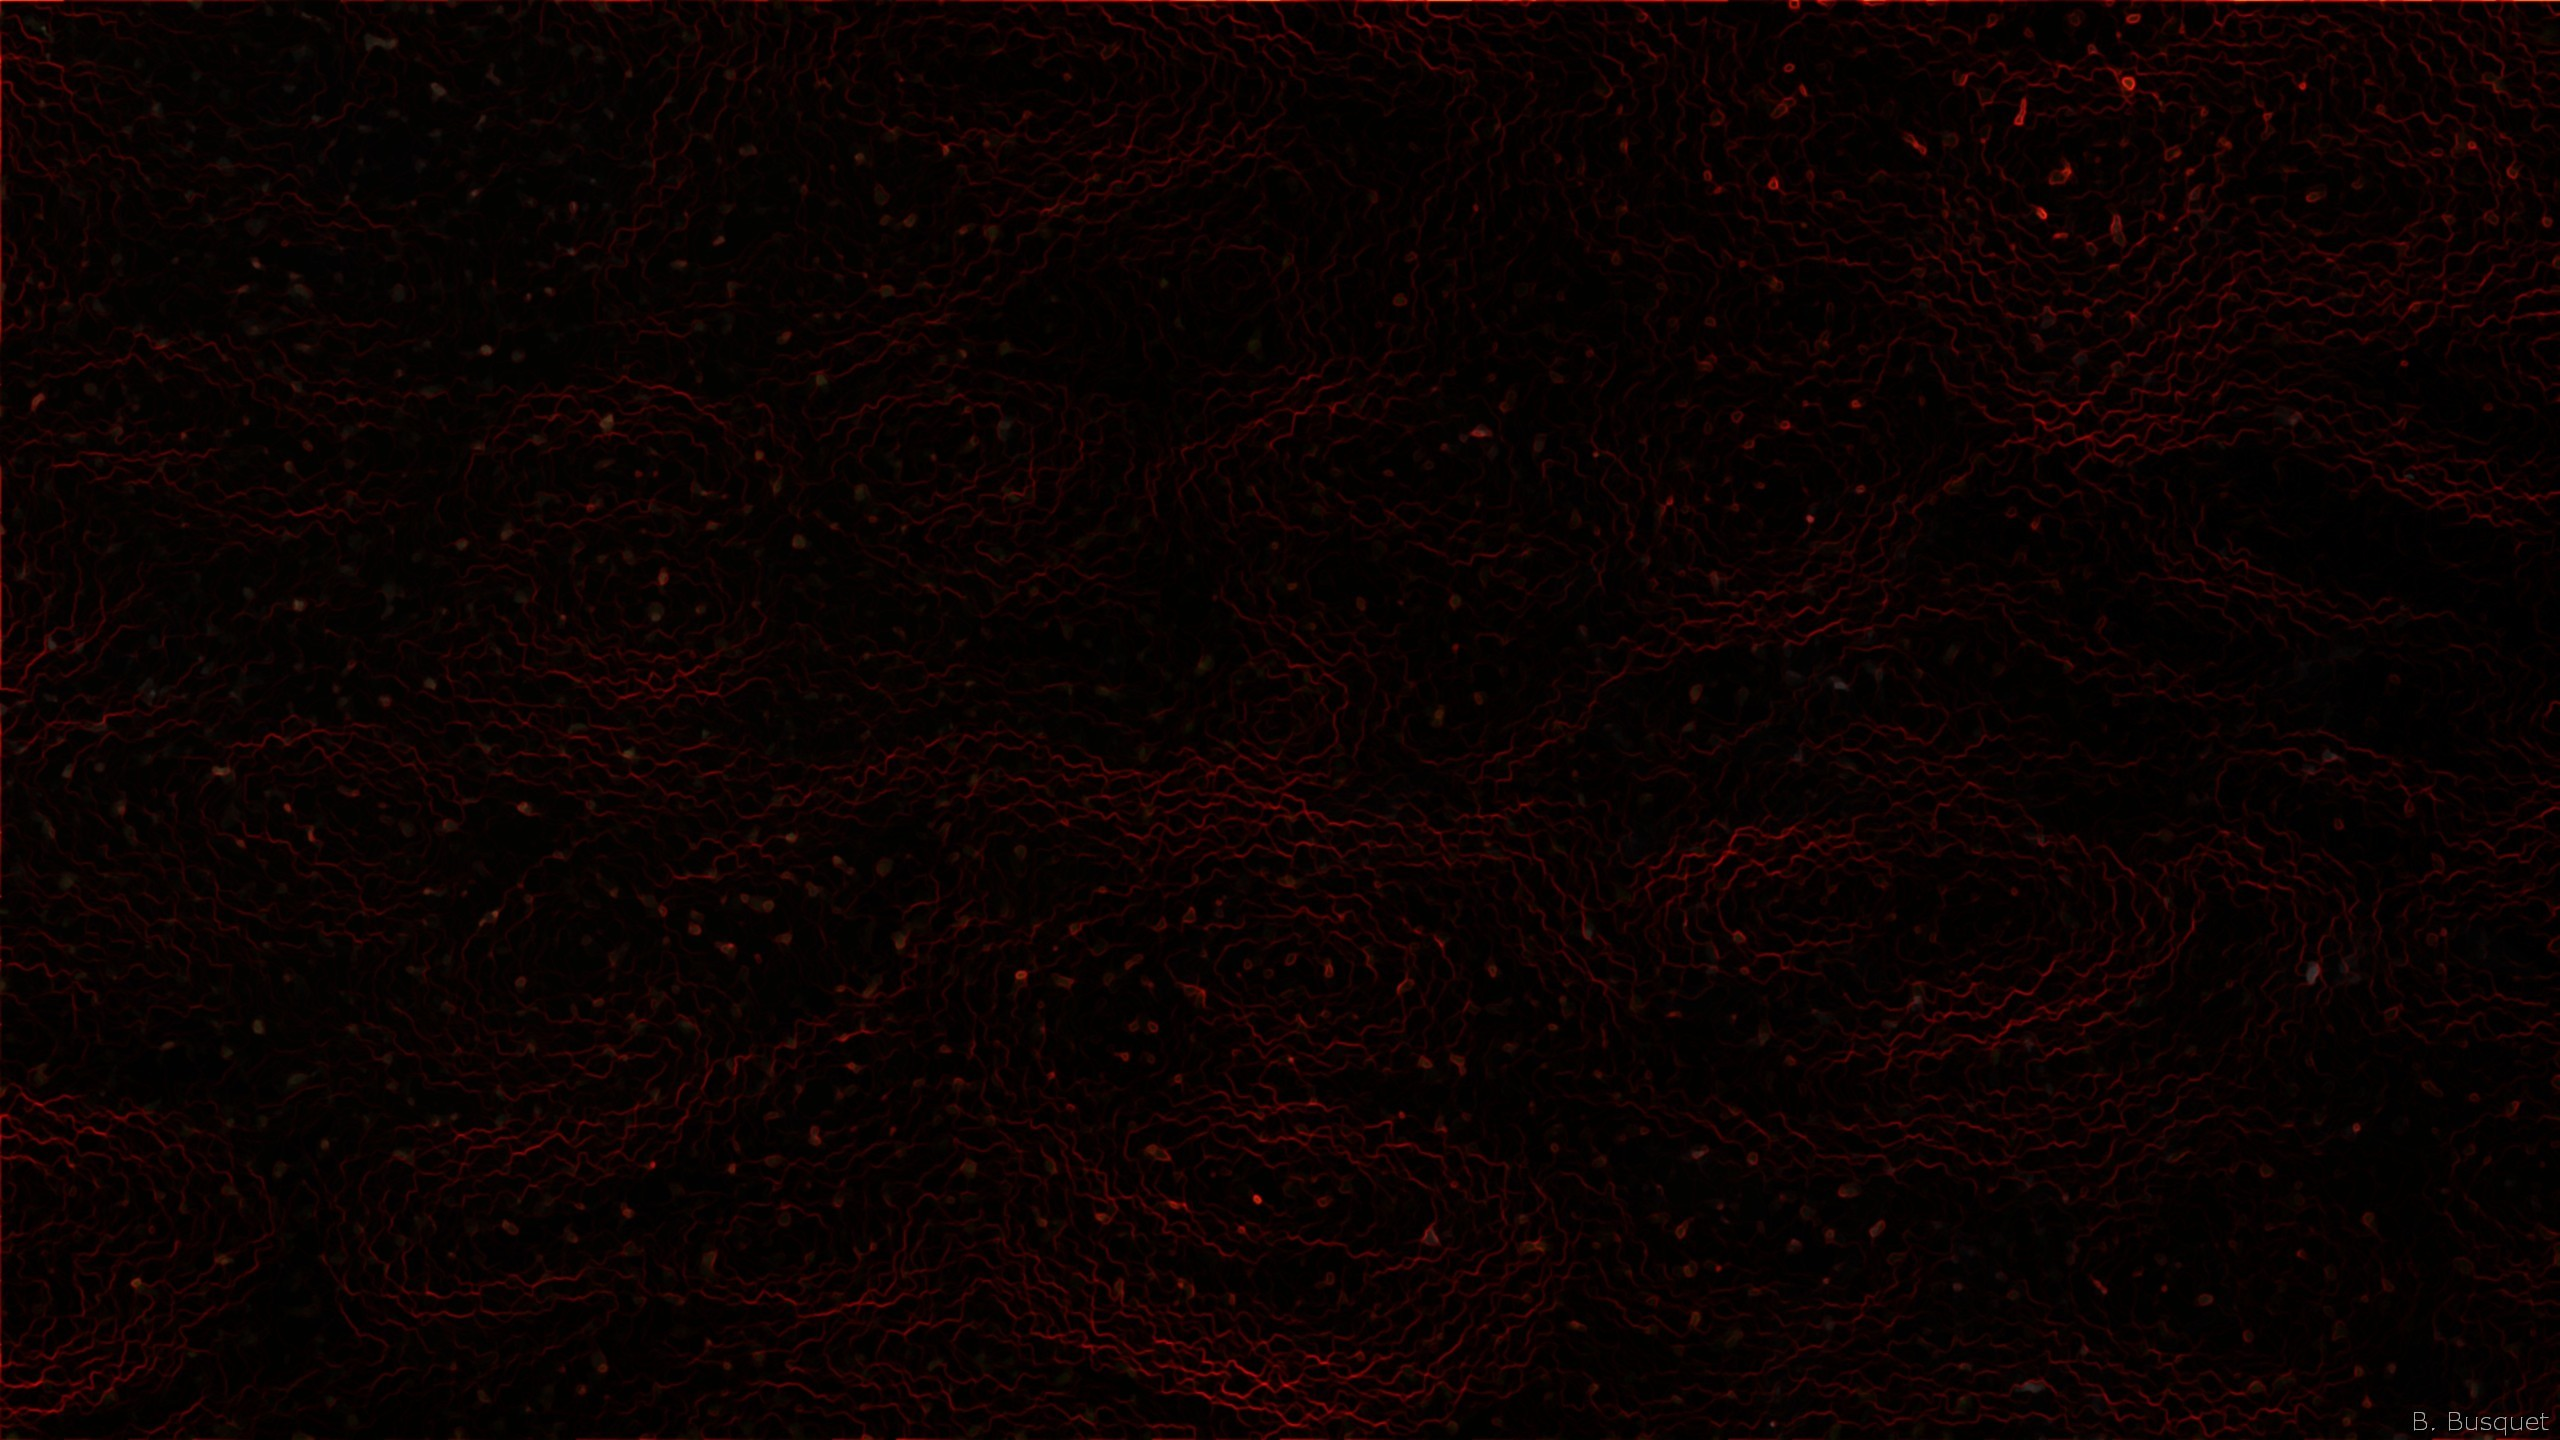 2560x1440 Abstract wallpaper with a dark pattern in black and red colors.